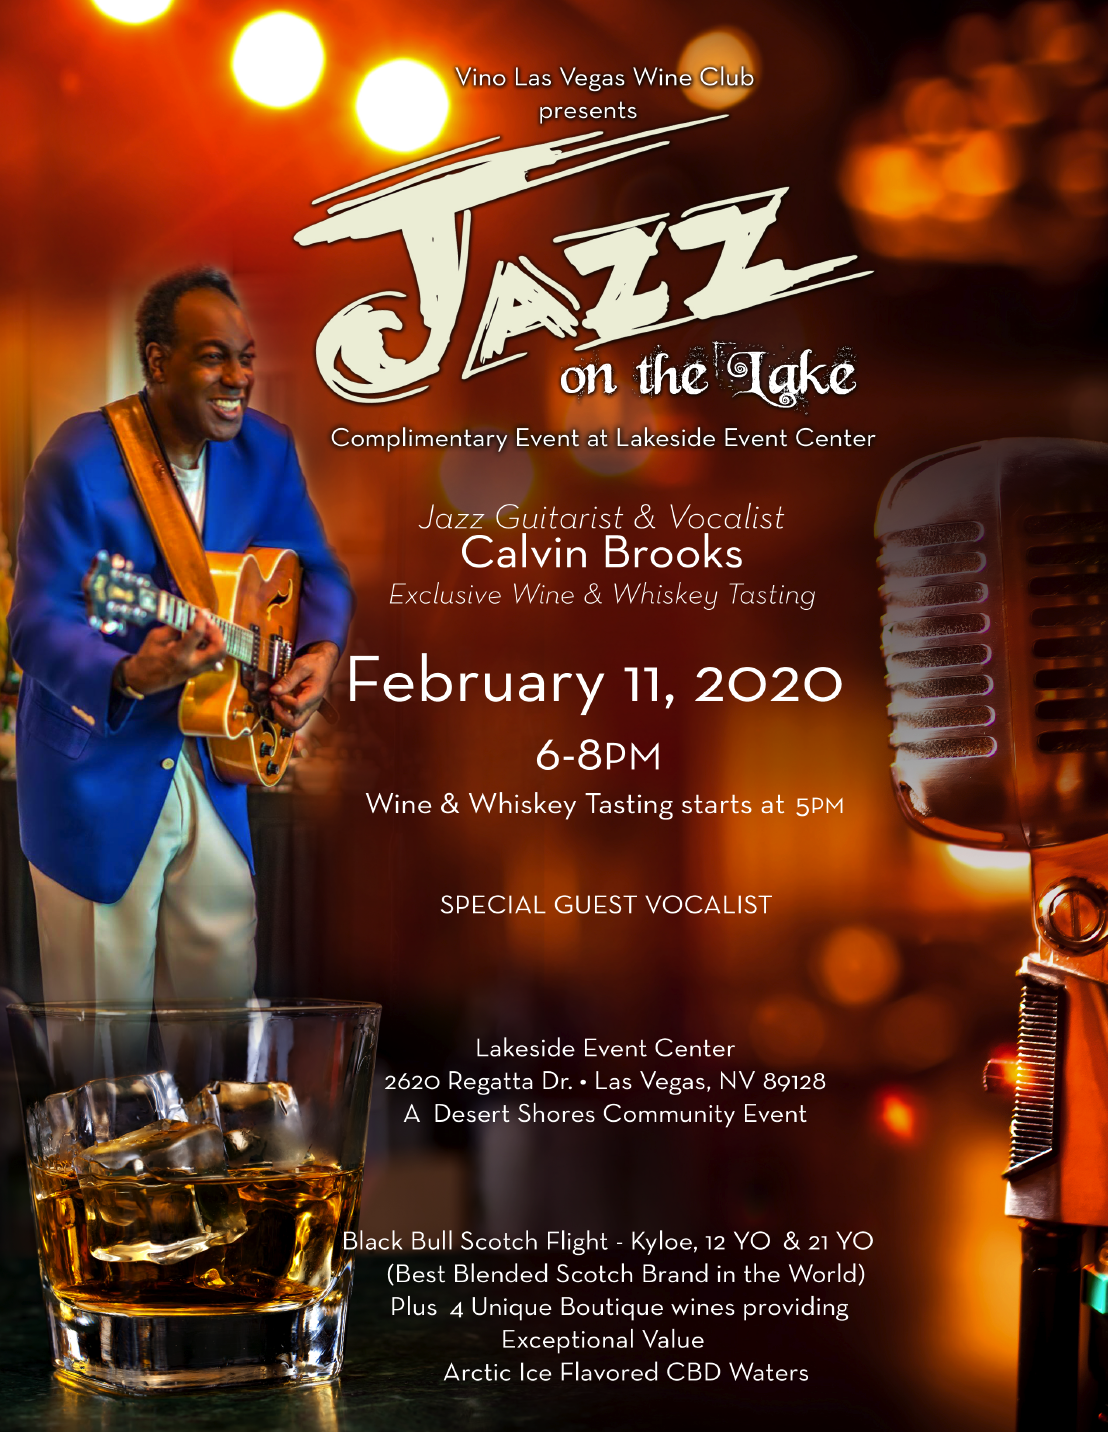 Calvin Brooks Jazz Flyer for February 11th, 2020 event at Lakeside Event Center